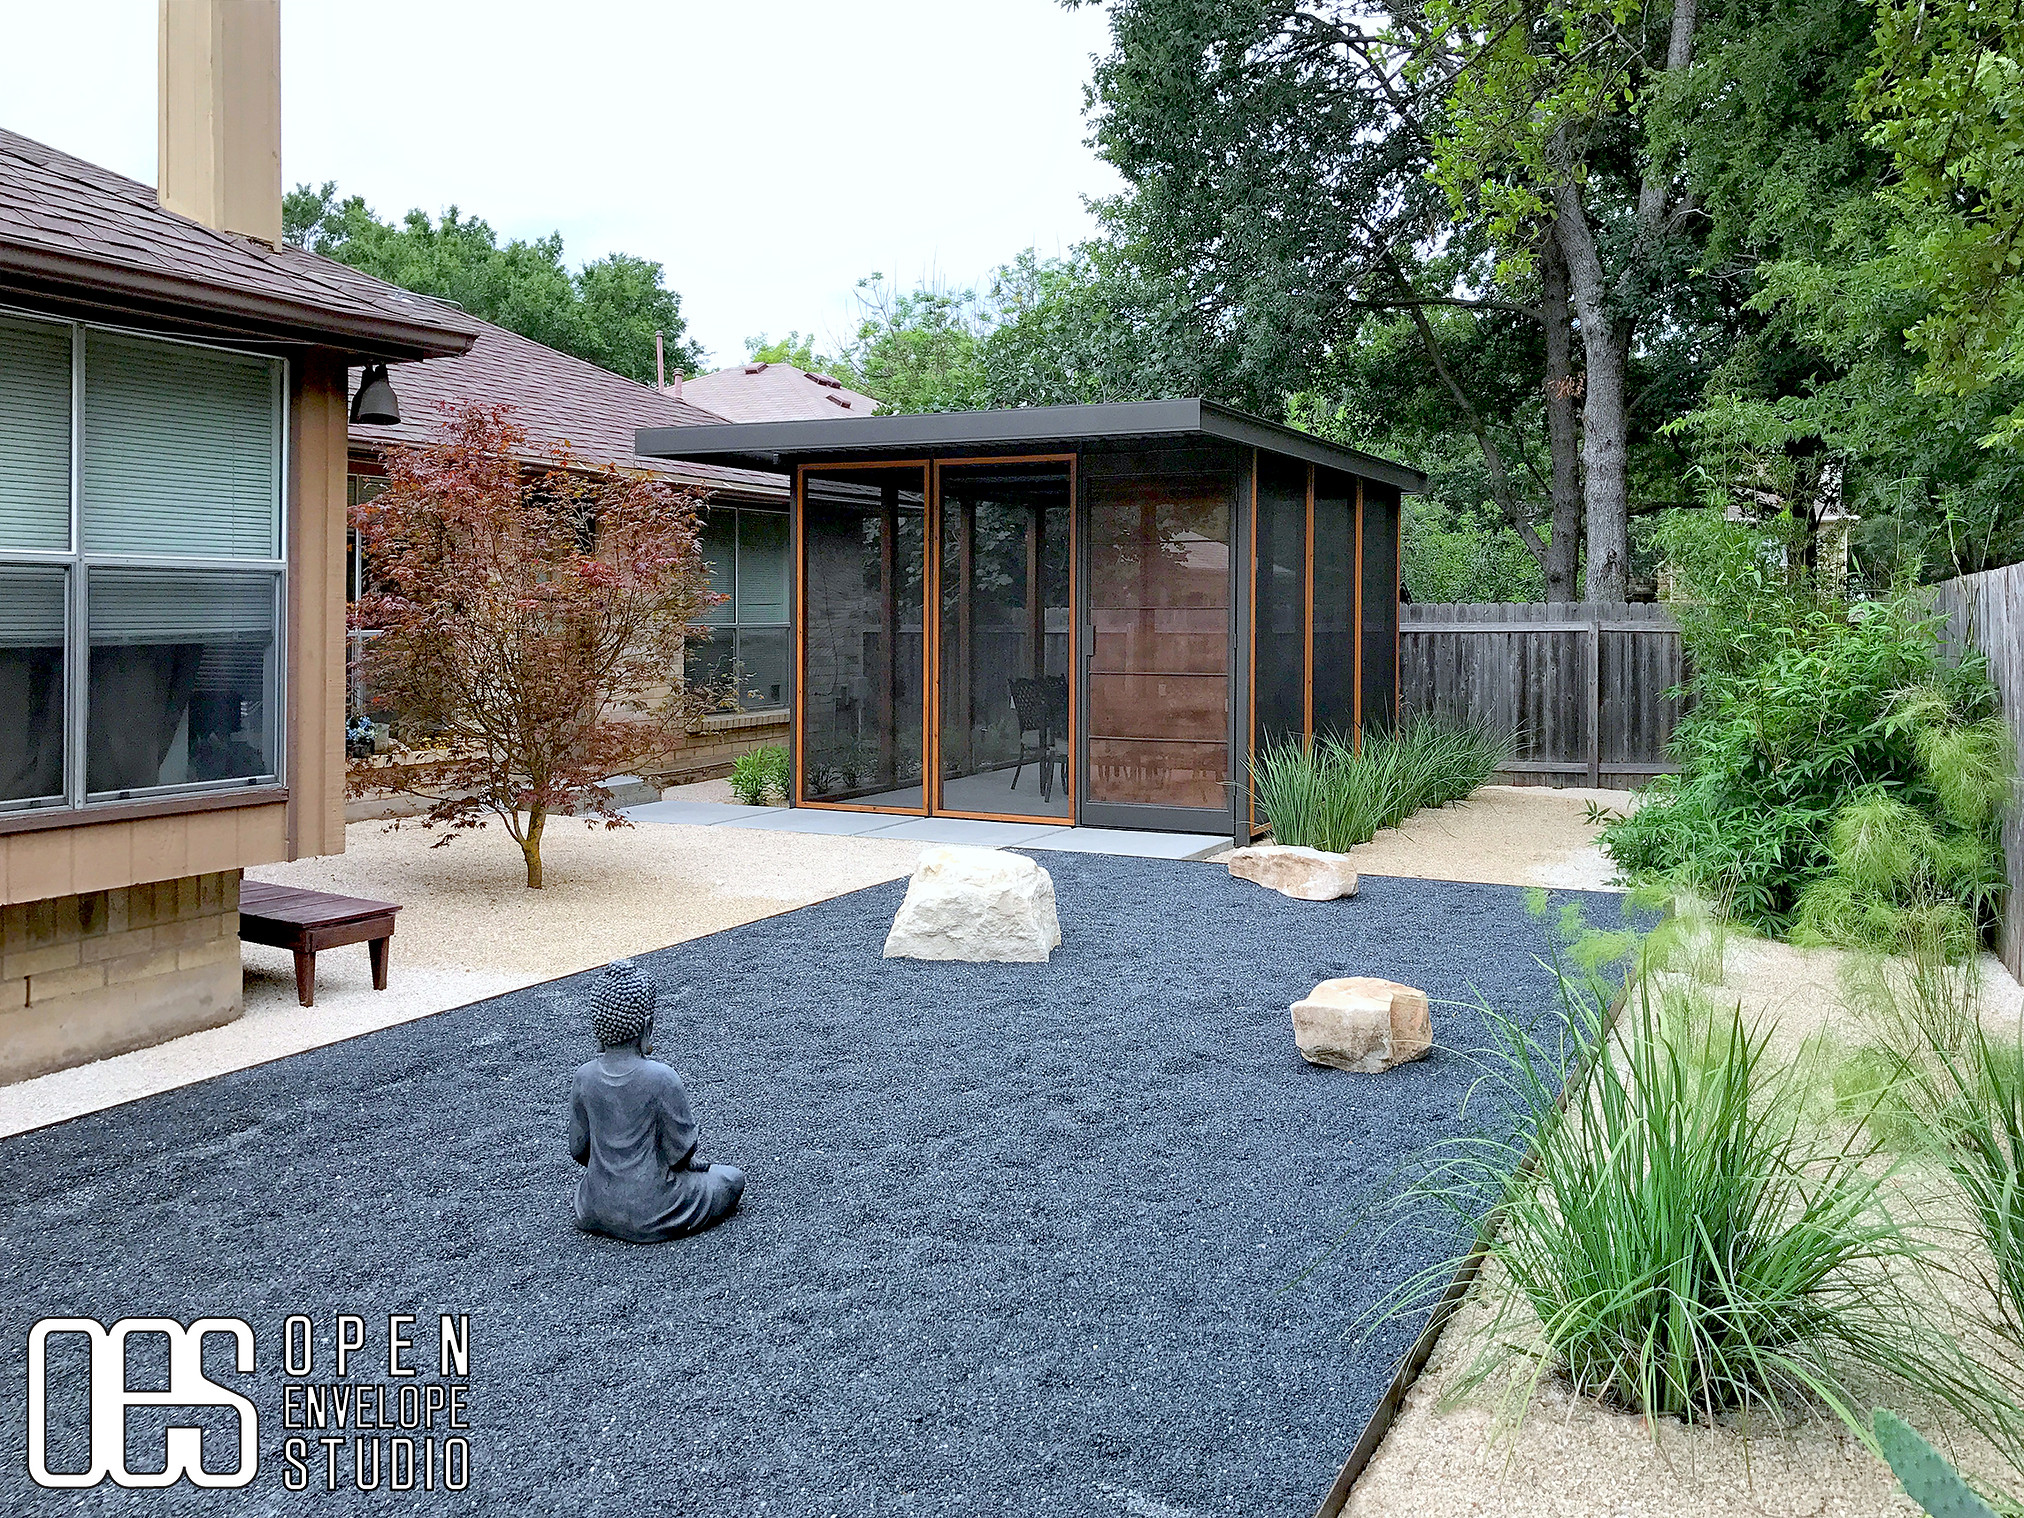 OES | Japanese-tea-house-inspired screened-in porch, Texas basalt rock garden with limestone borders, drought tolerant plants